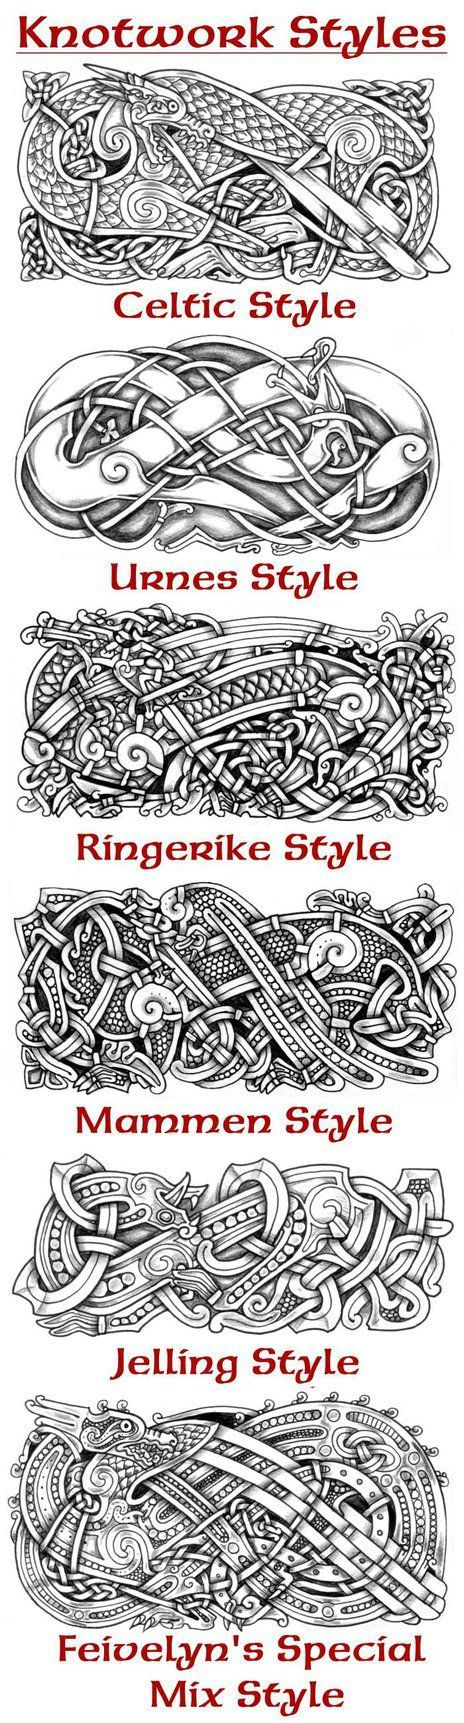 Examples of almost the same motif and composition in different knotwork styles. I made one 2 years ago and I thought it was time to draw an updated version.